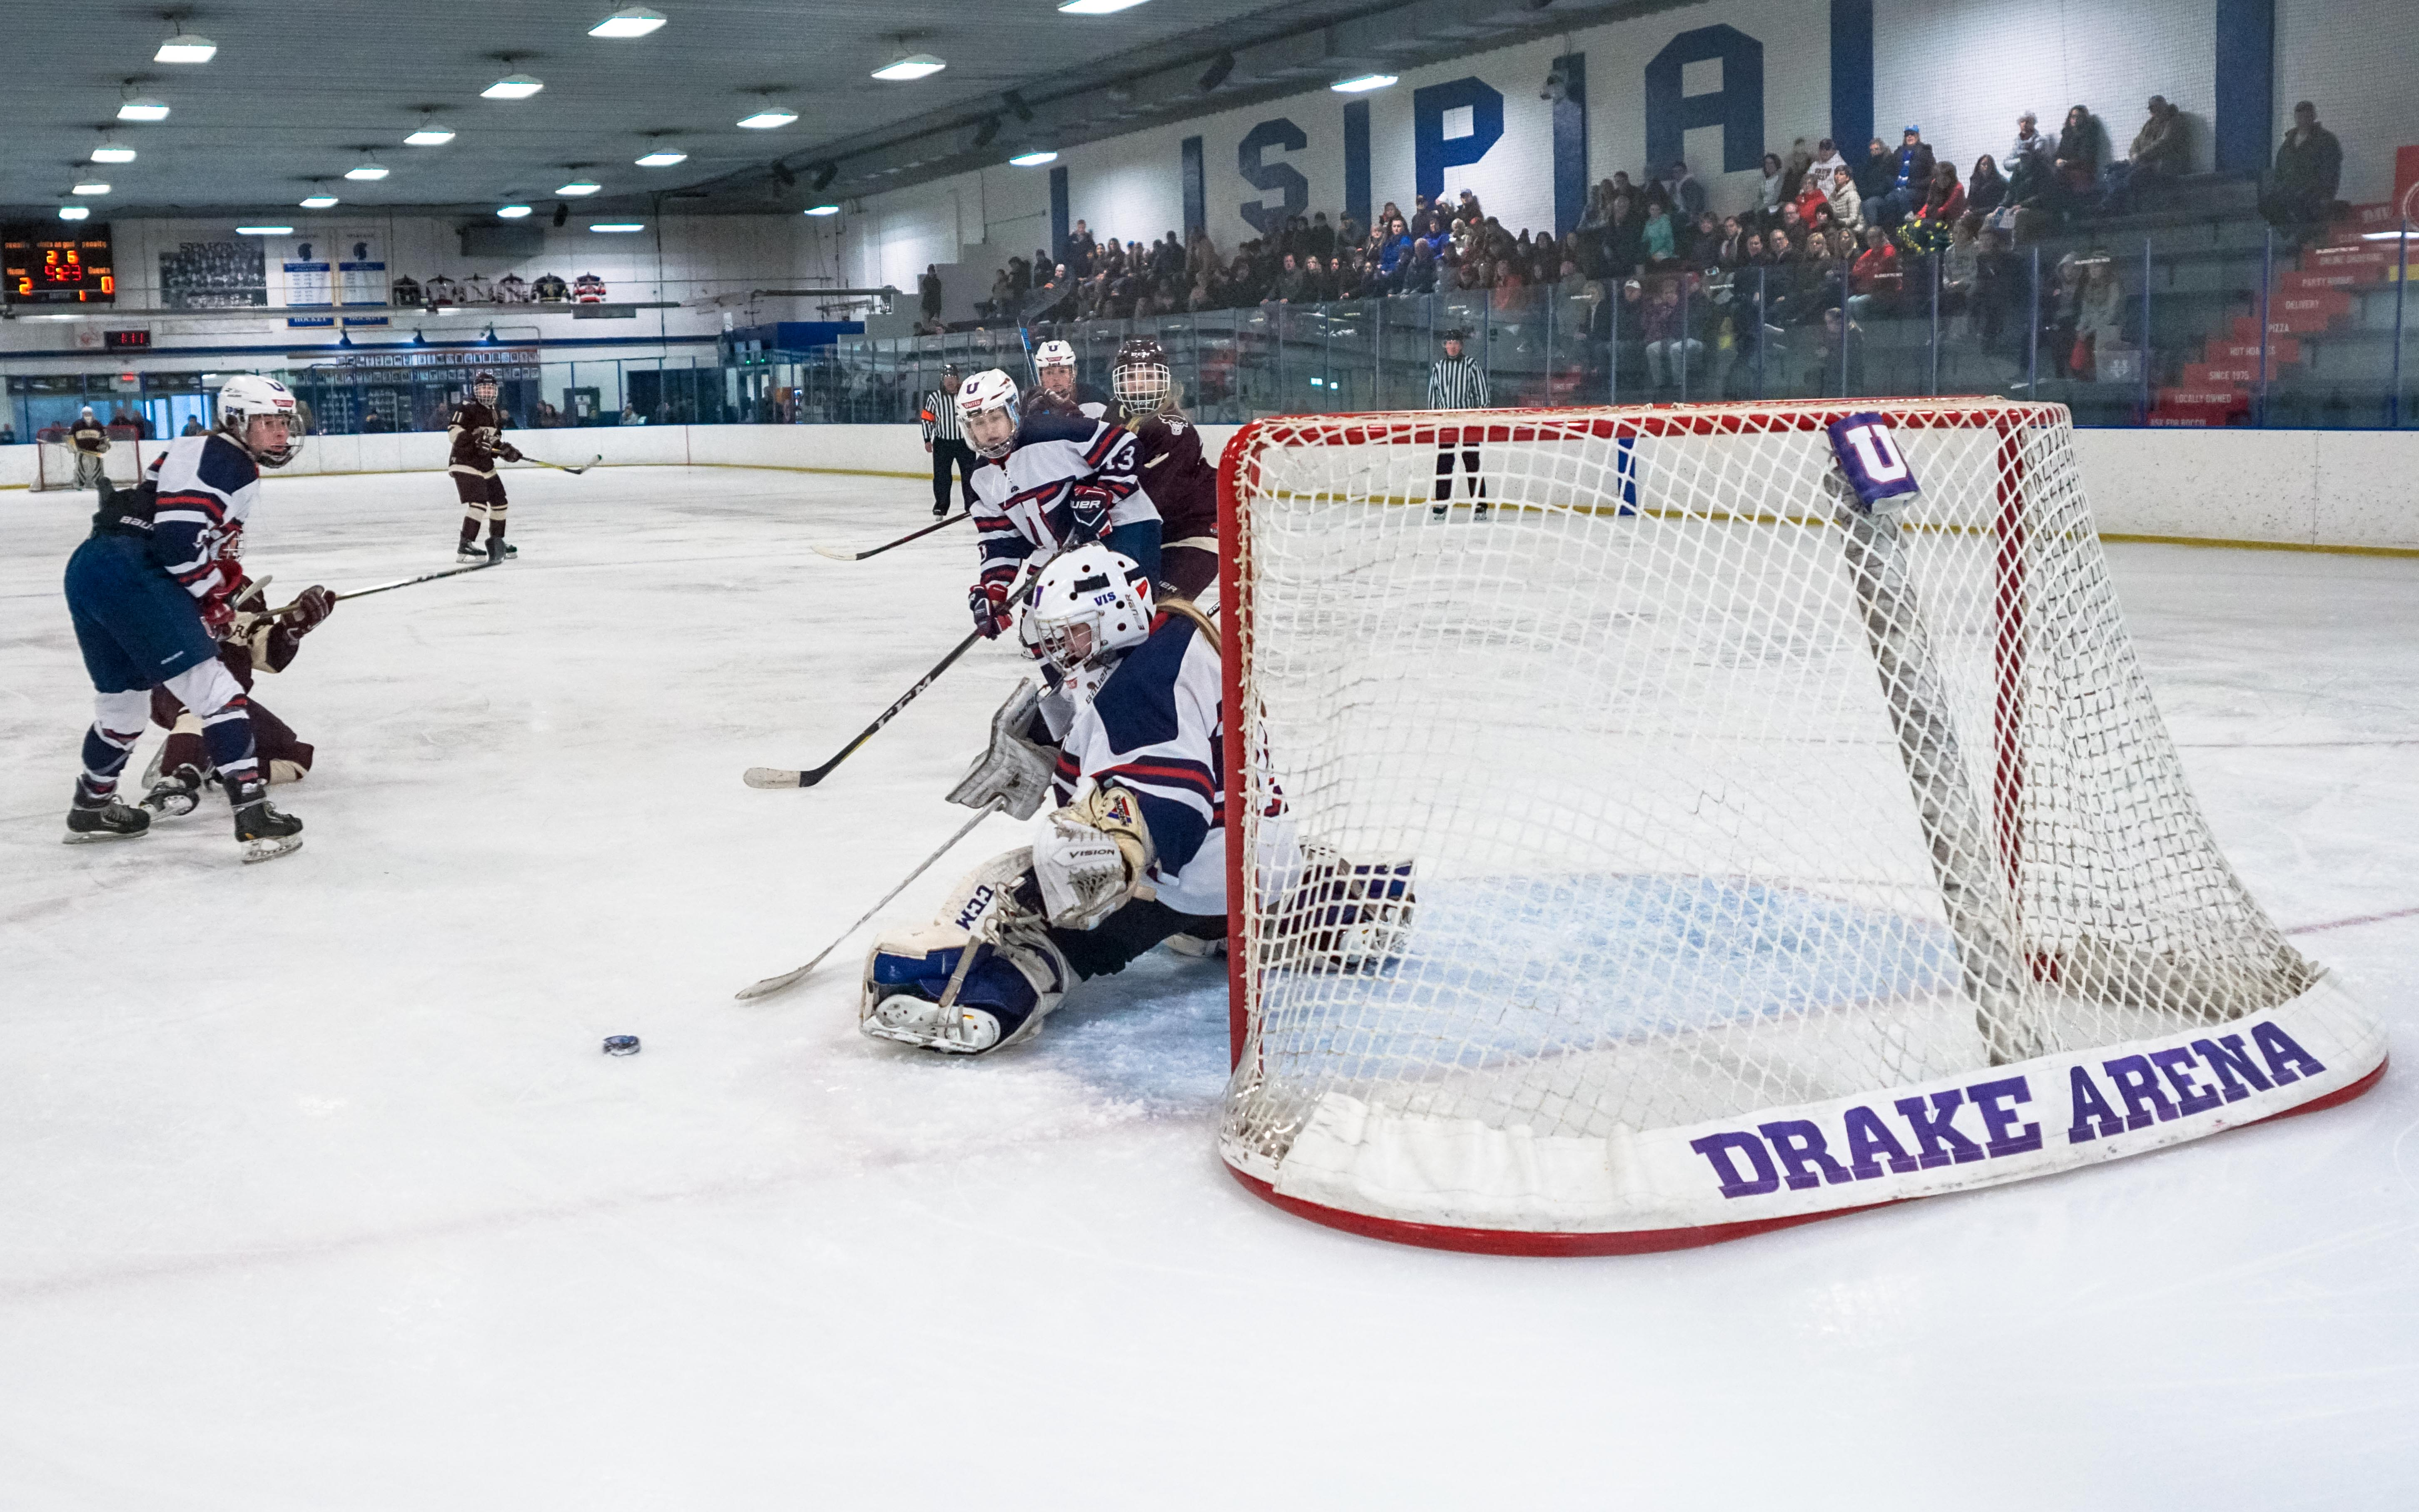 St. Paul United goalie Kenzie Giese makes a save during the action on Feb. 2 in Drake Arena against South St. Paul. Photo by Korey McDermott, SportsEngine